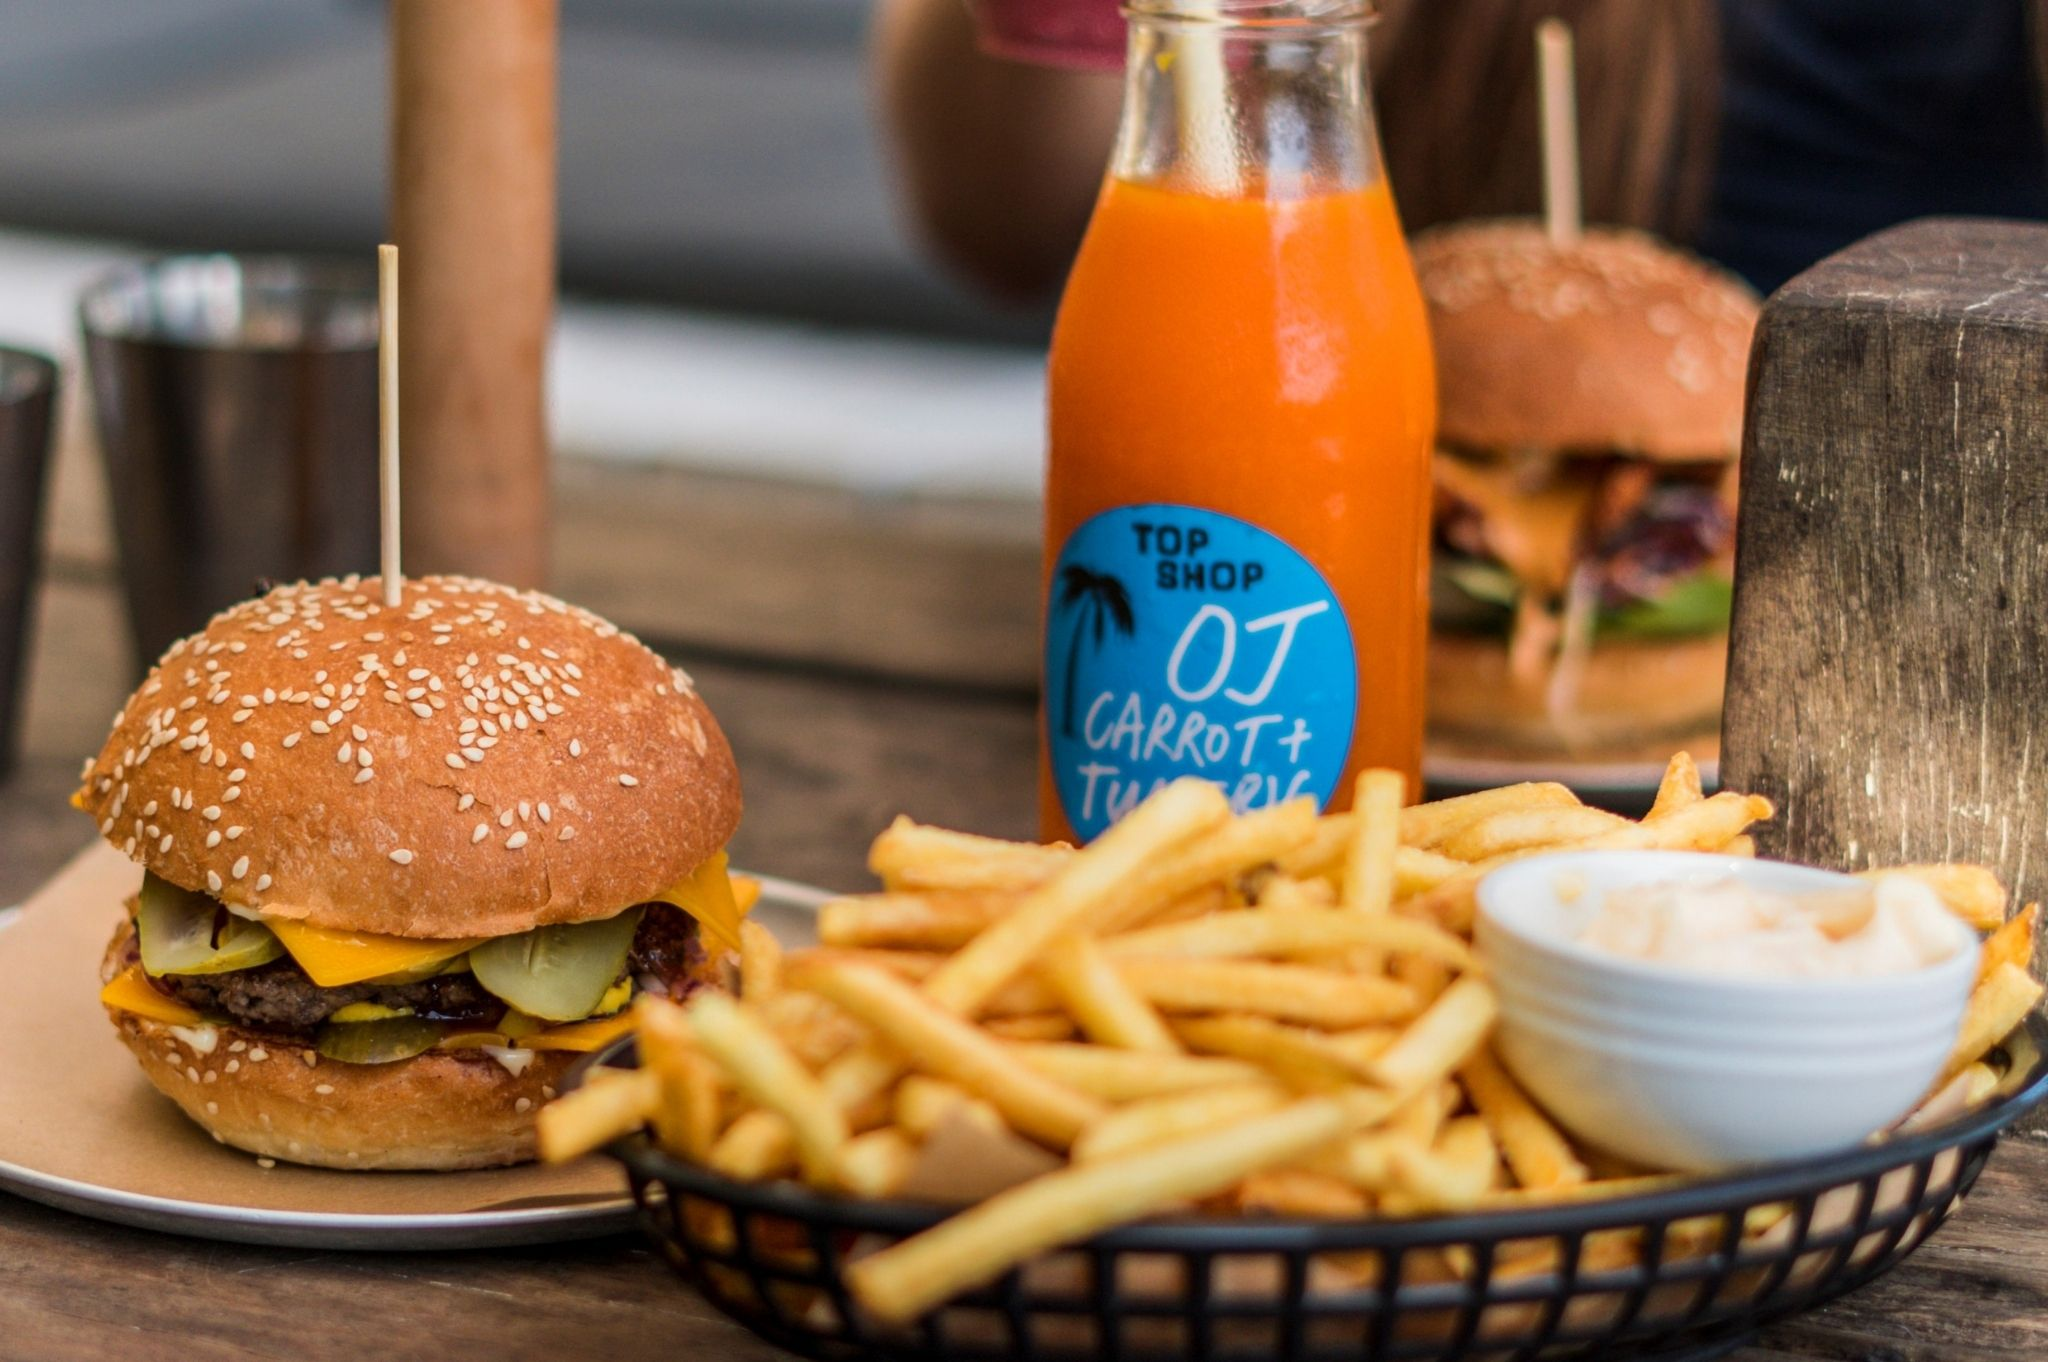 Image of a burger and chips at a cafe in Byron Bay NSW